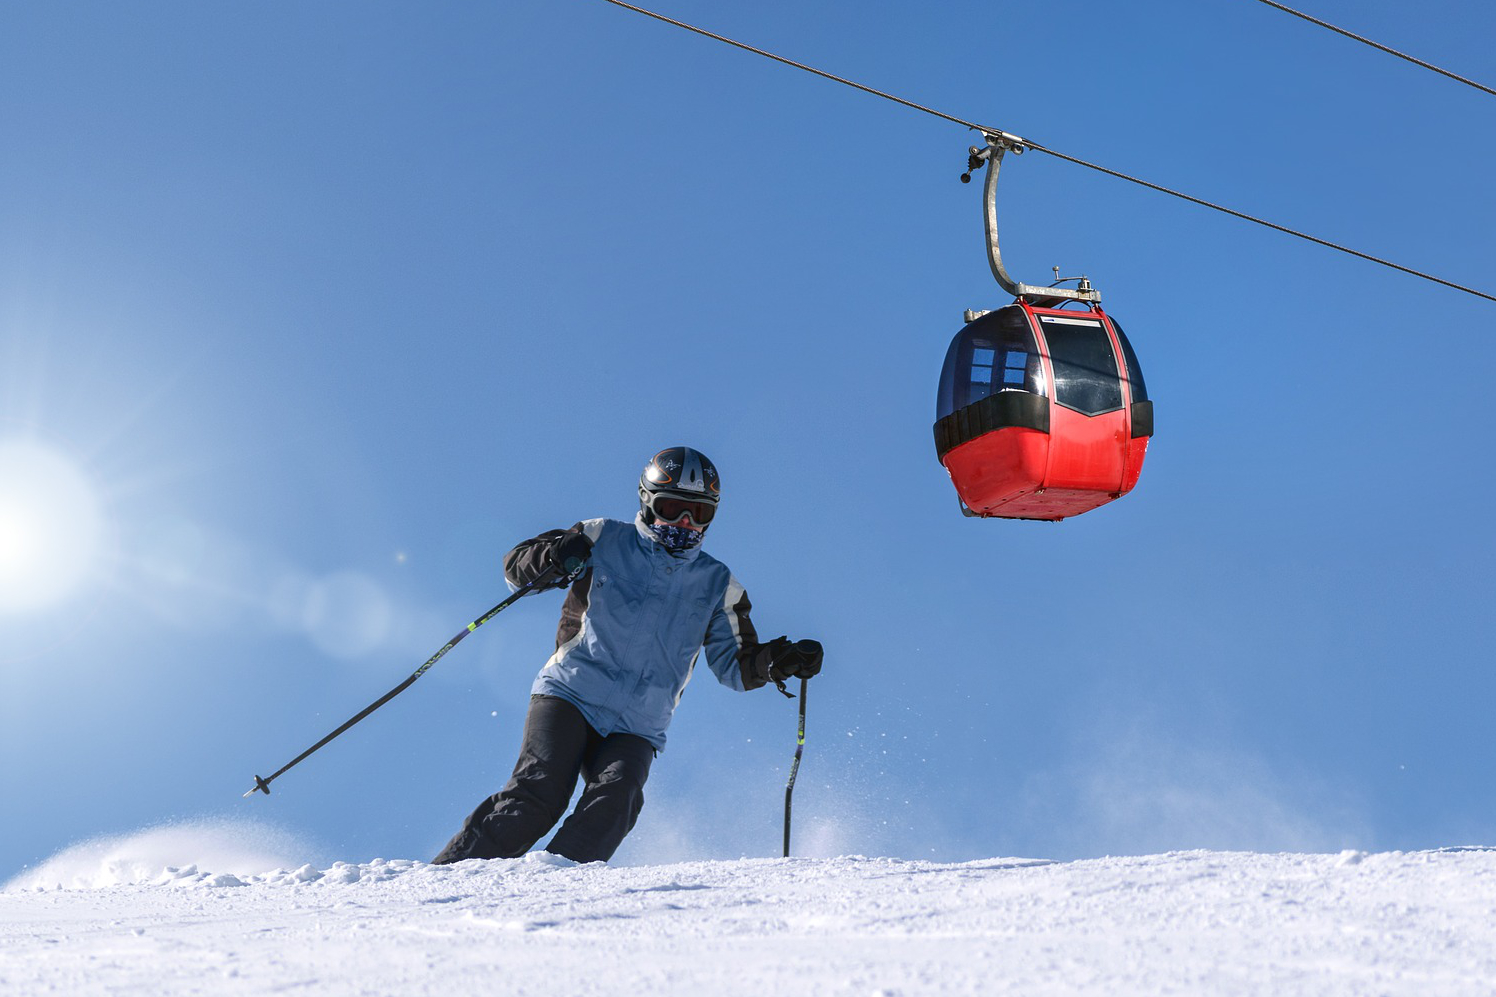 skier with goggles on